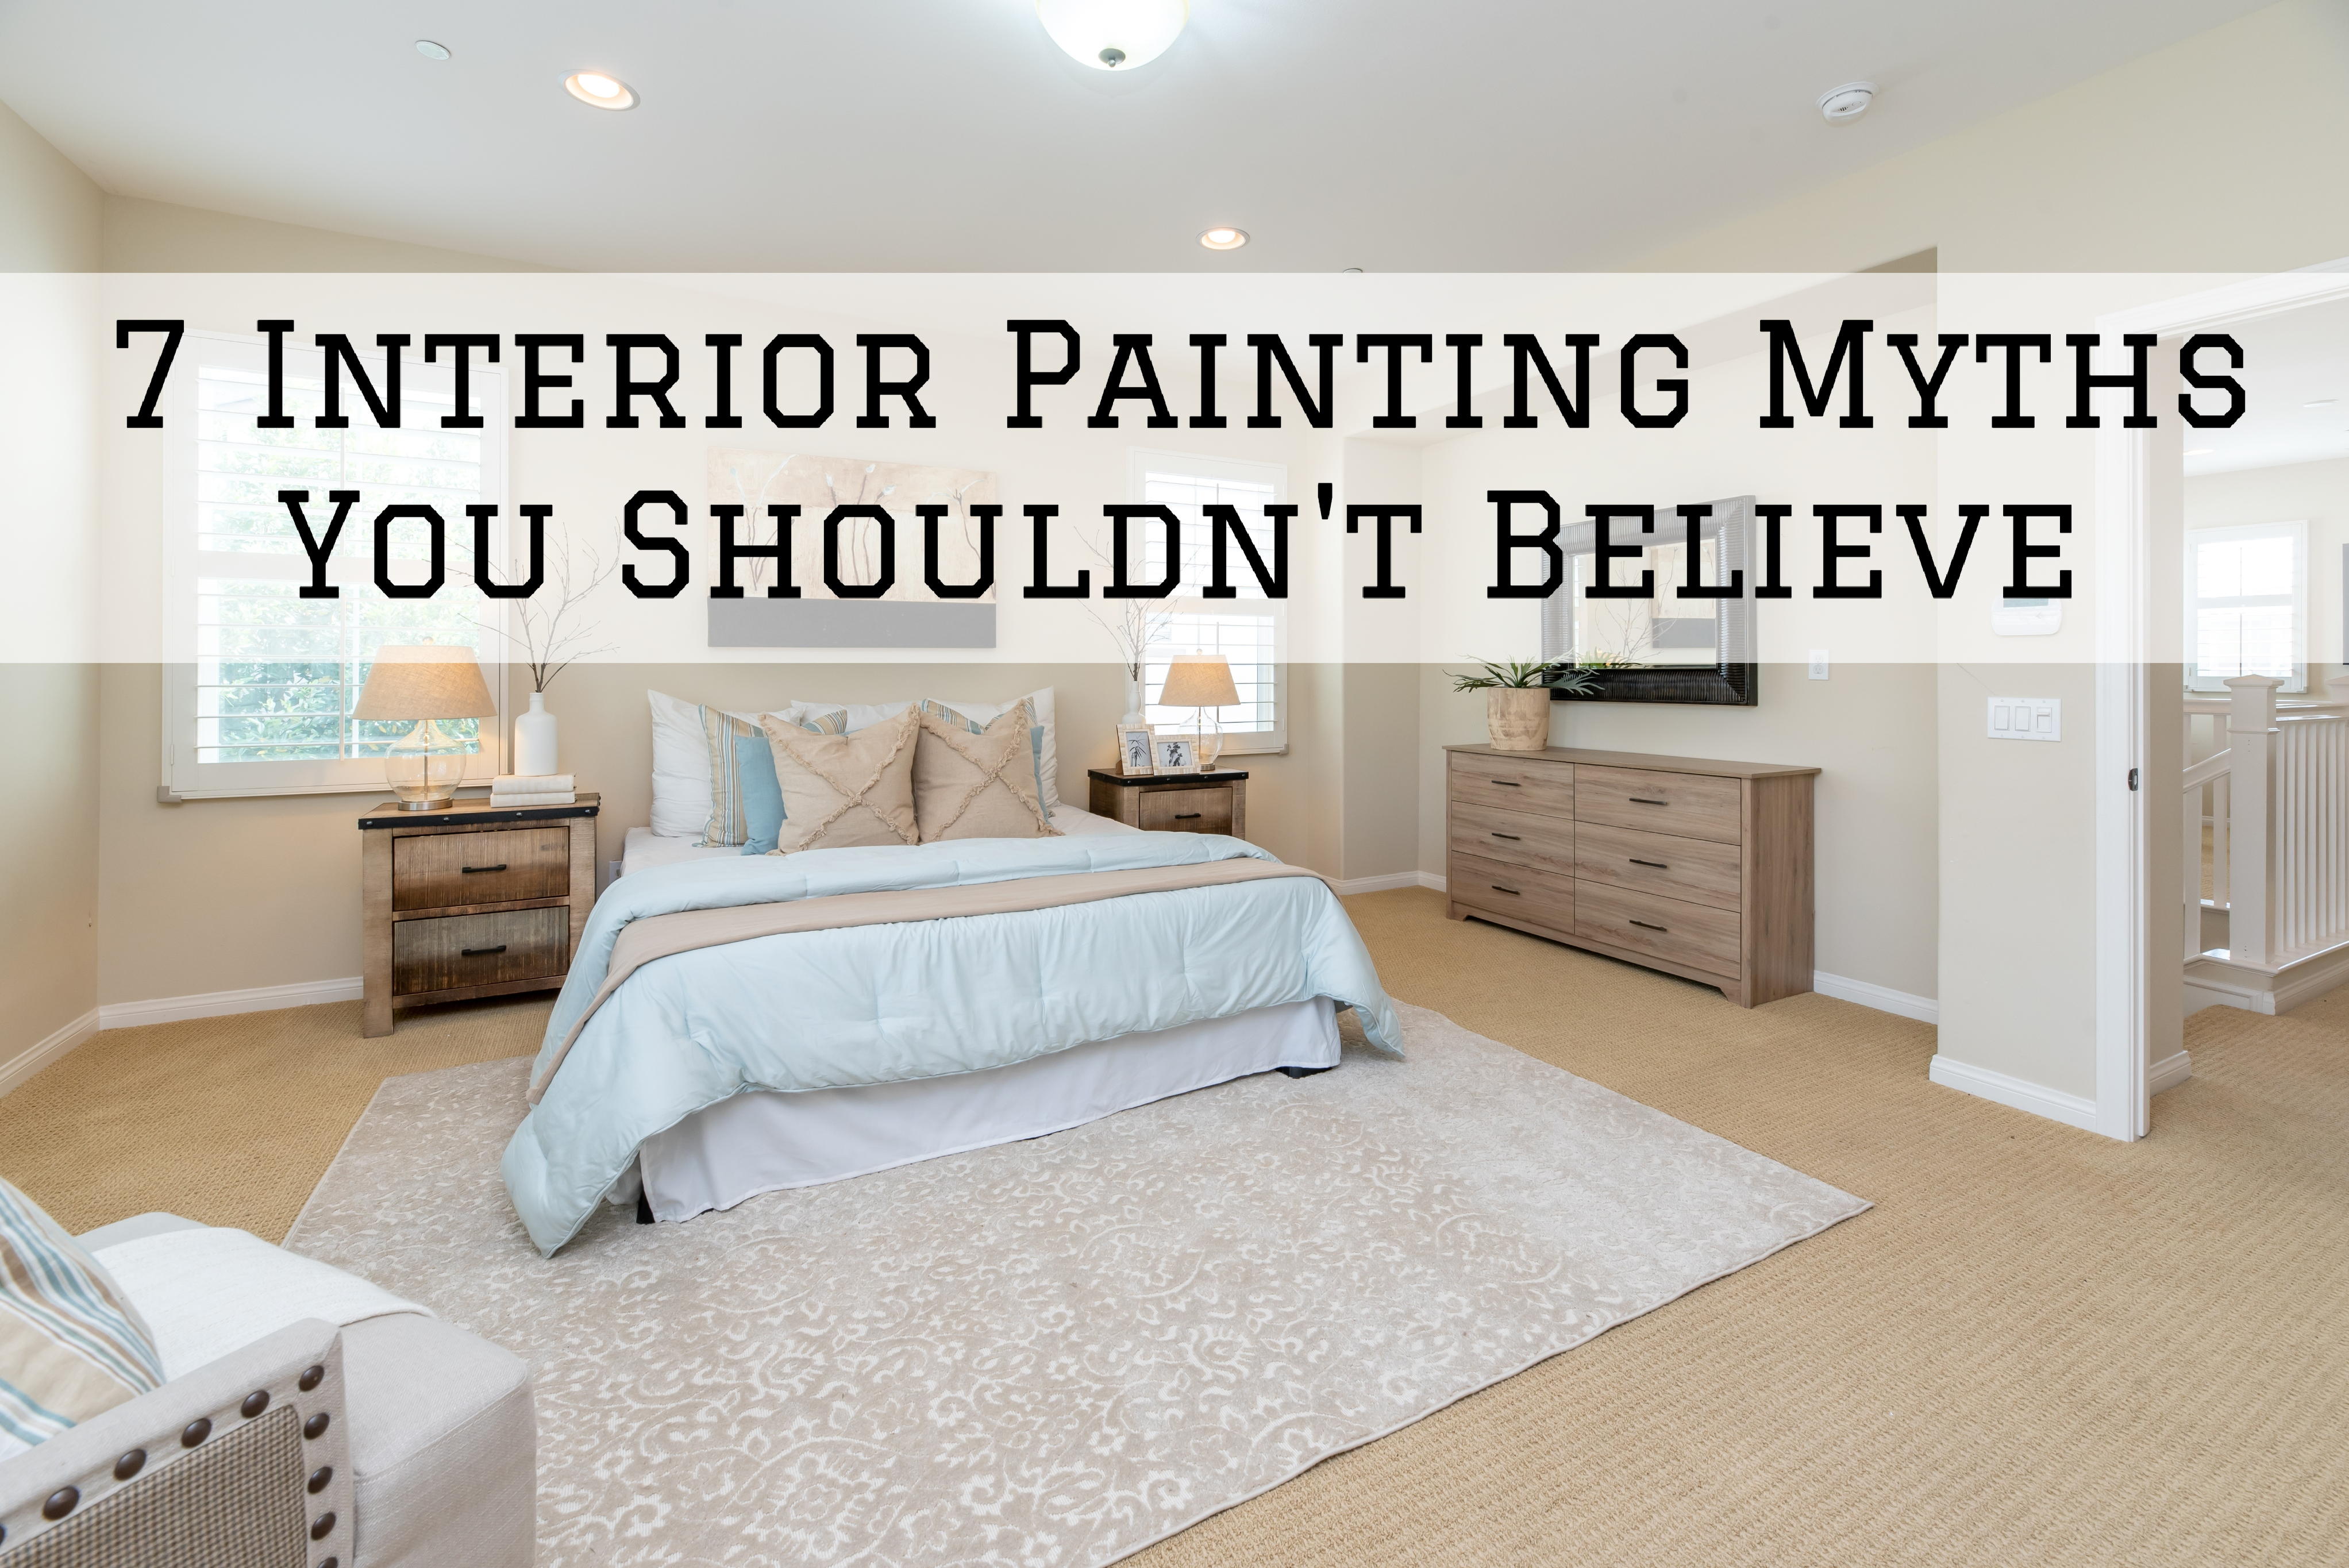 7 Interior Painting Myths You Shouldn't Believe in Omaha, NE